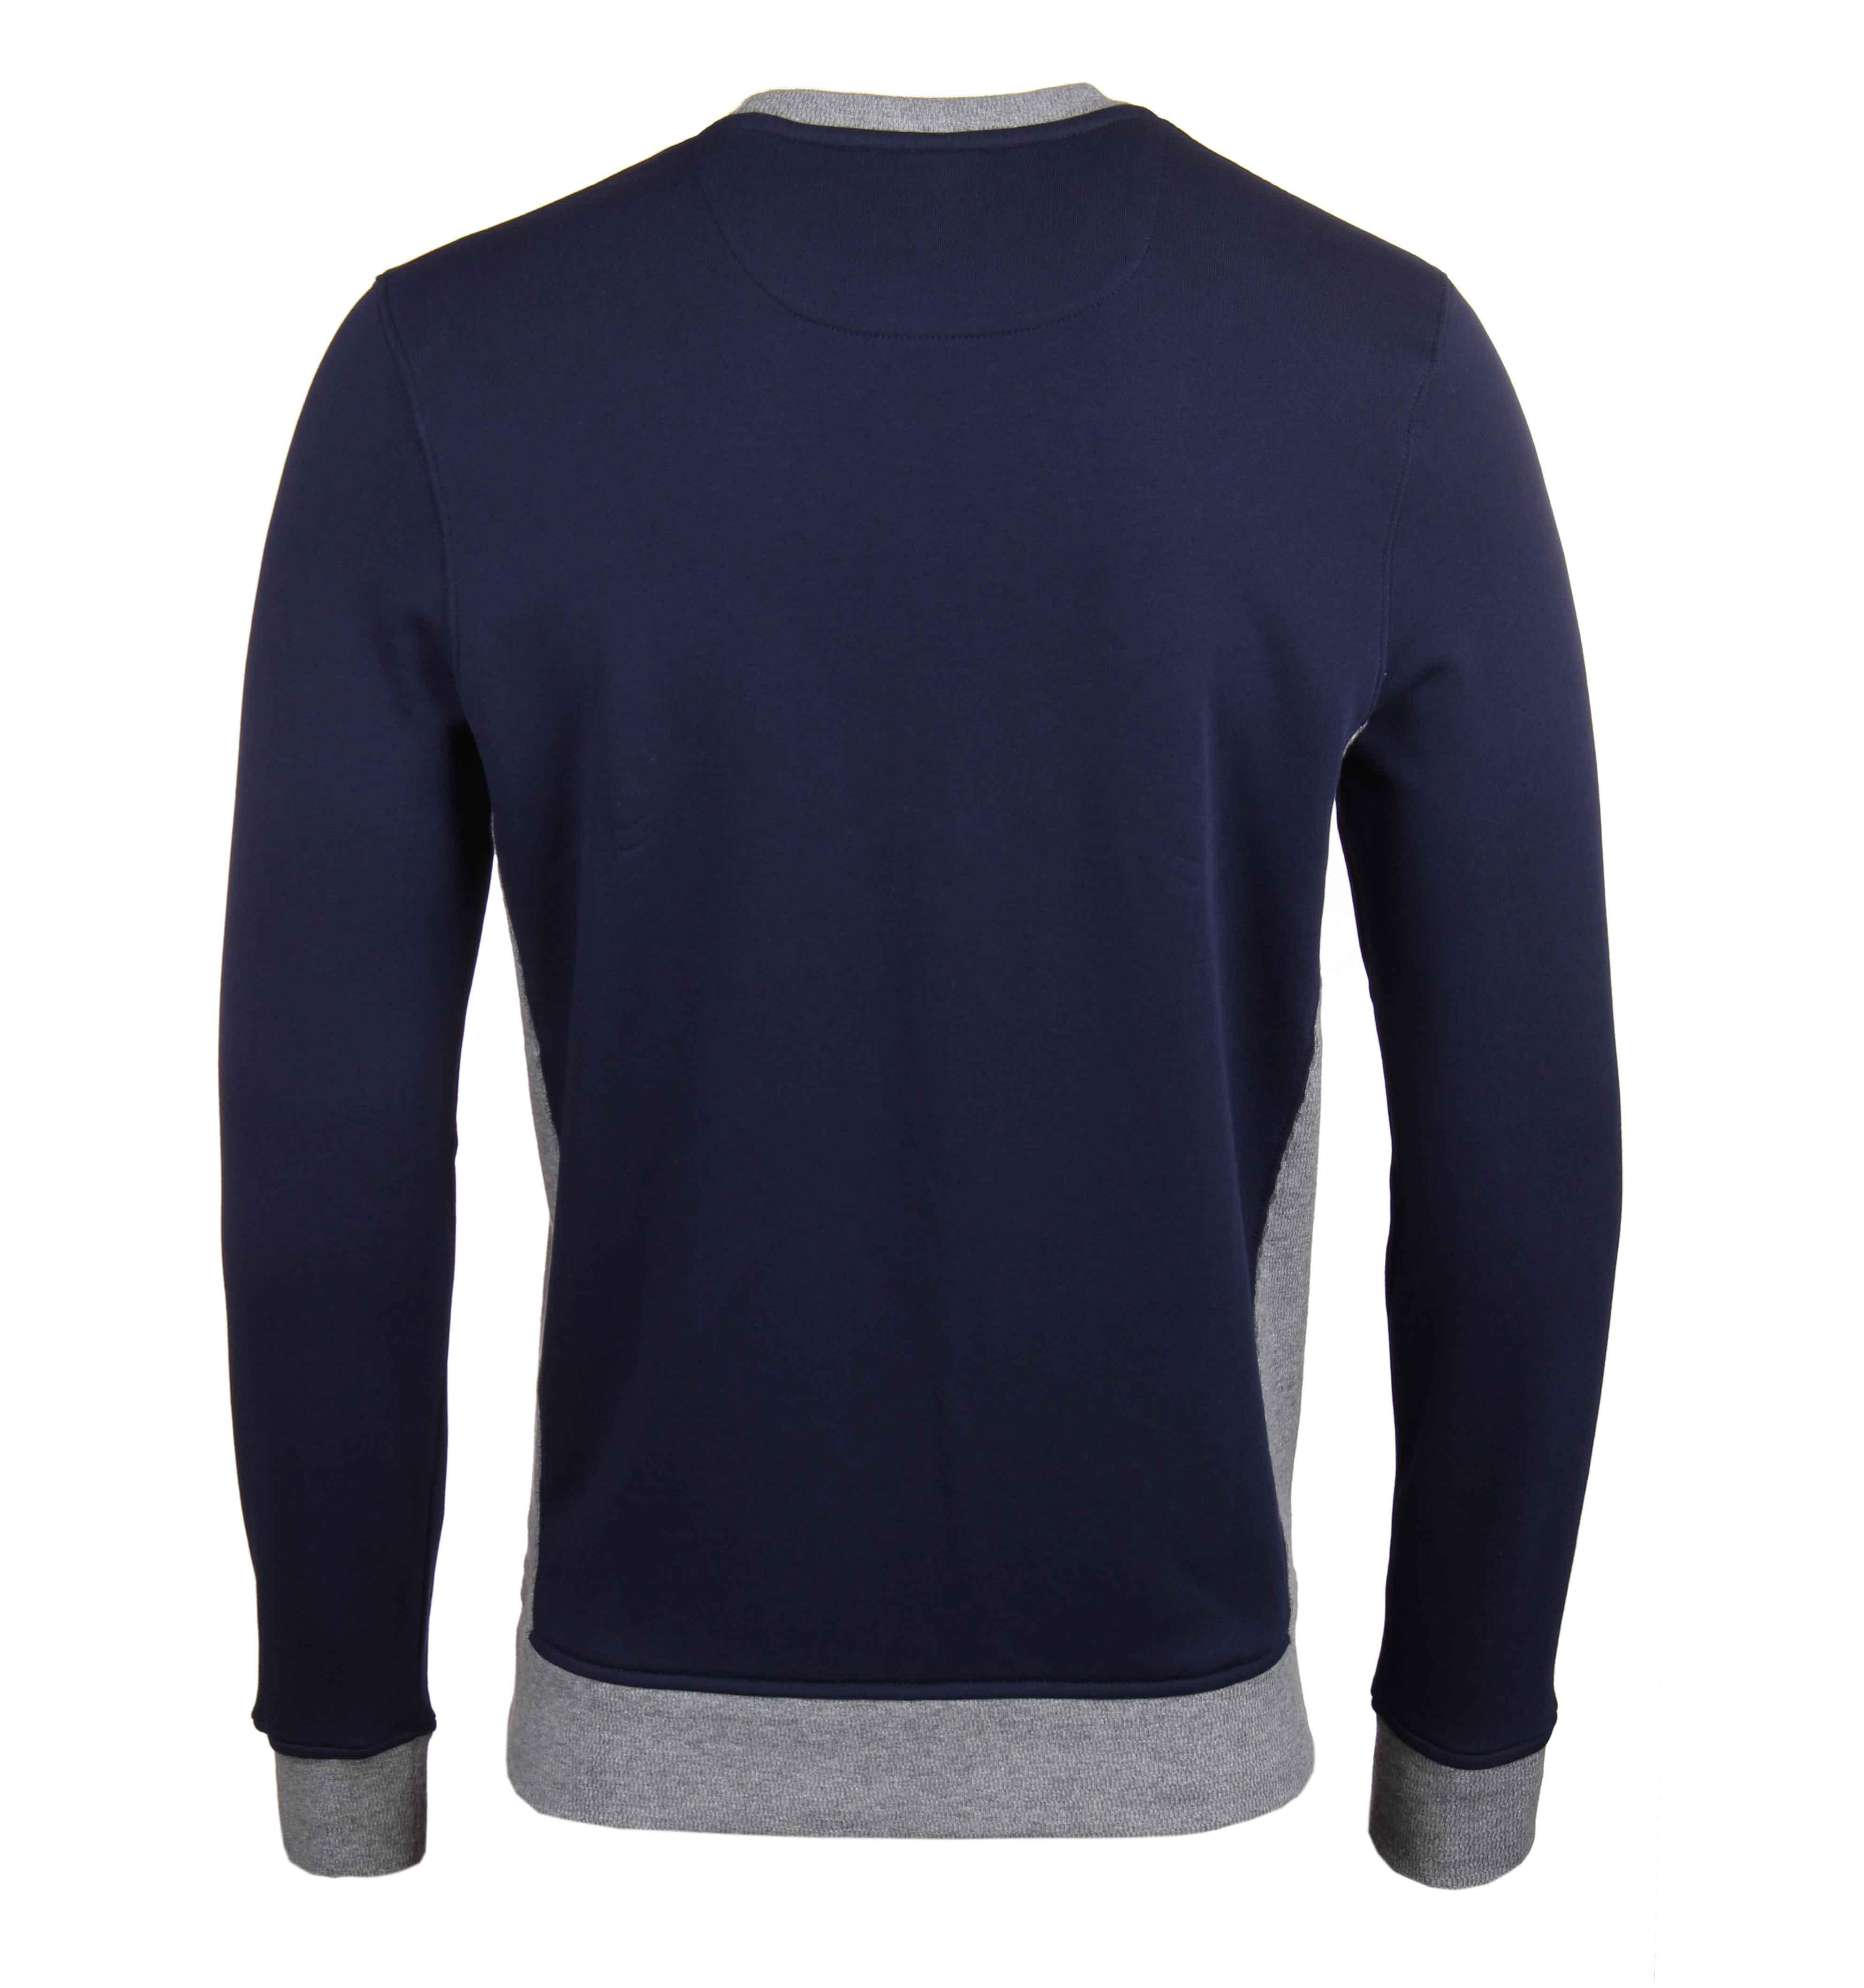 Mens Contrast Rib Crew Neck Sweatshirt Lyle & Scott Top Quality Cheap Online Discount Official Site Fashionable Cheap Online Choice For Sale Sale Footlocker Finishline npAl0pHjZw